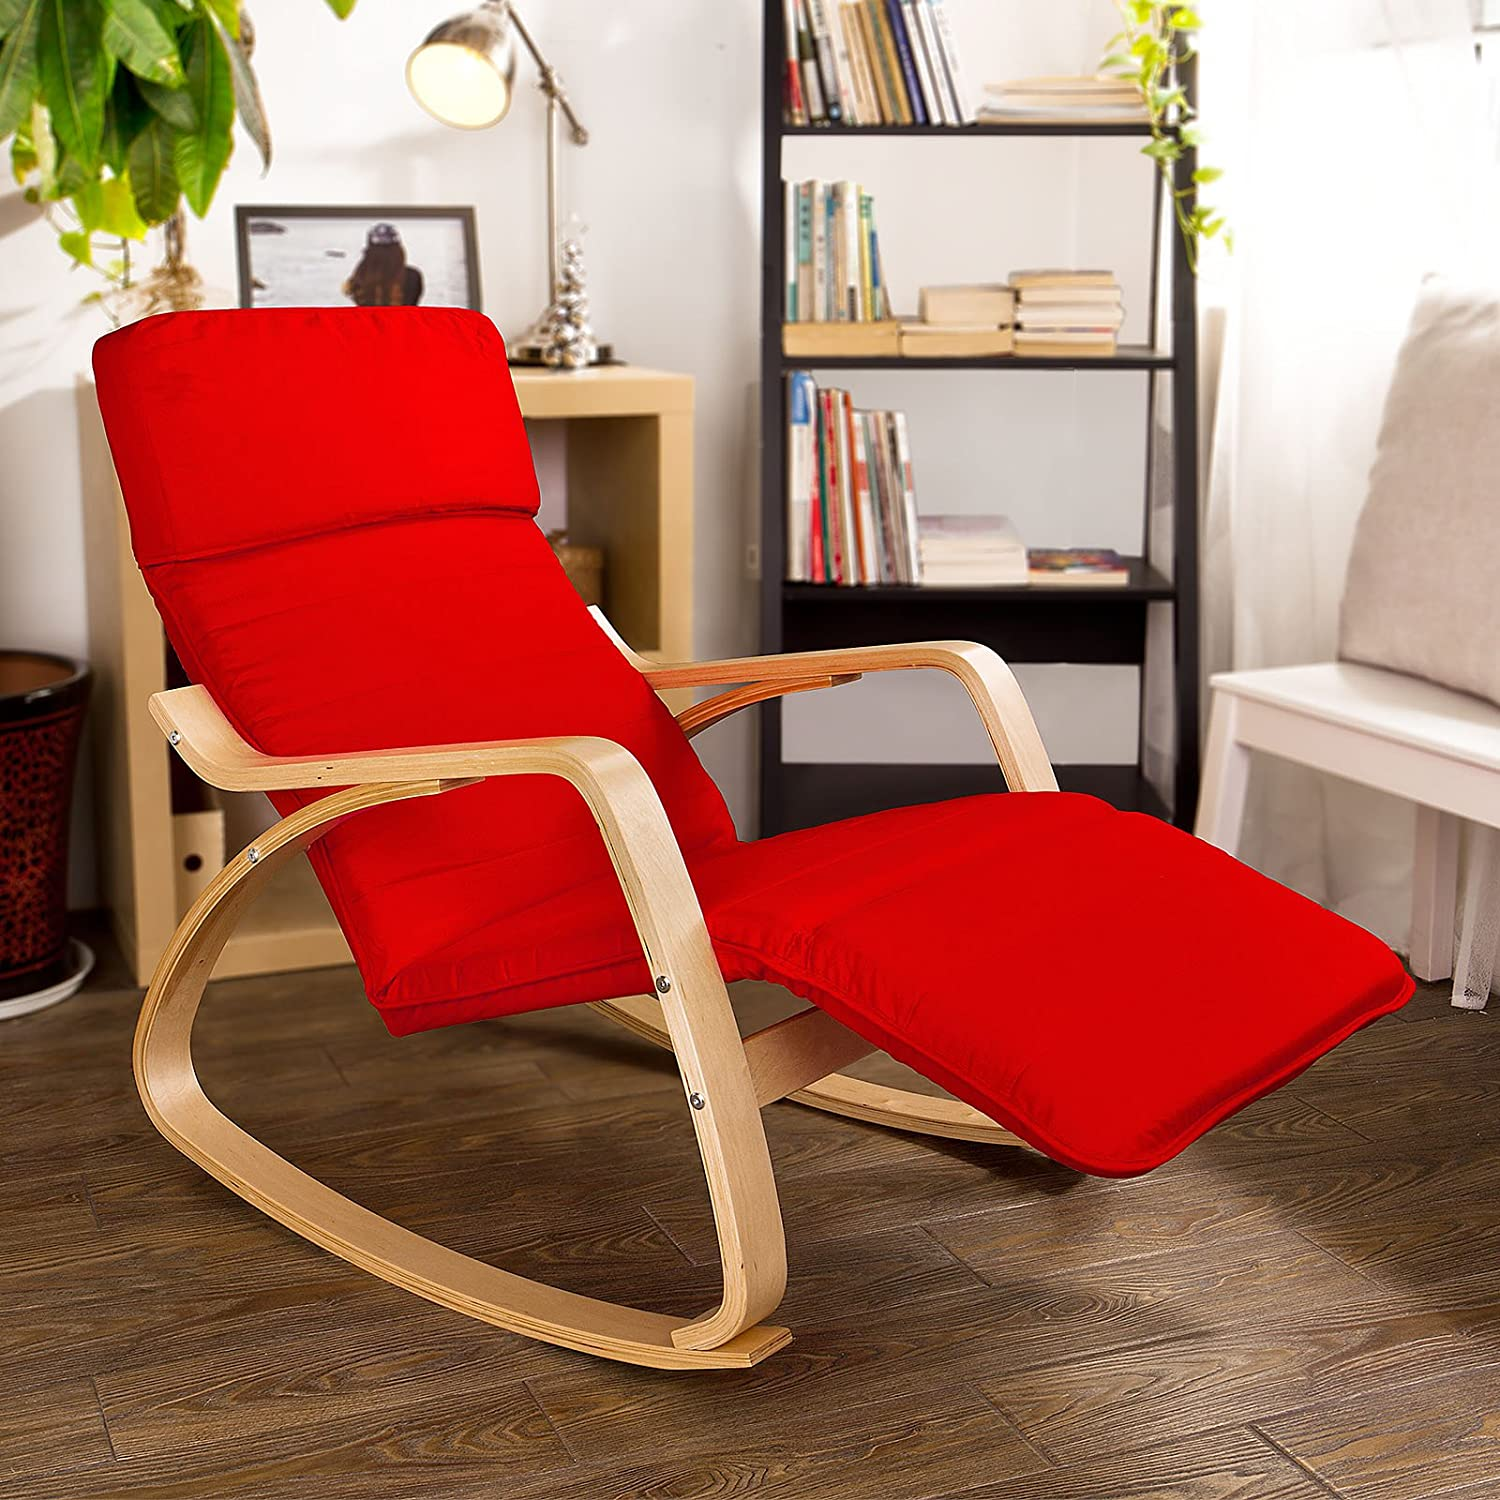 Robas Lund Calgary Sessel Robas Lund Calgary Relaxsessel Relaxsessel Empfehlung